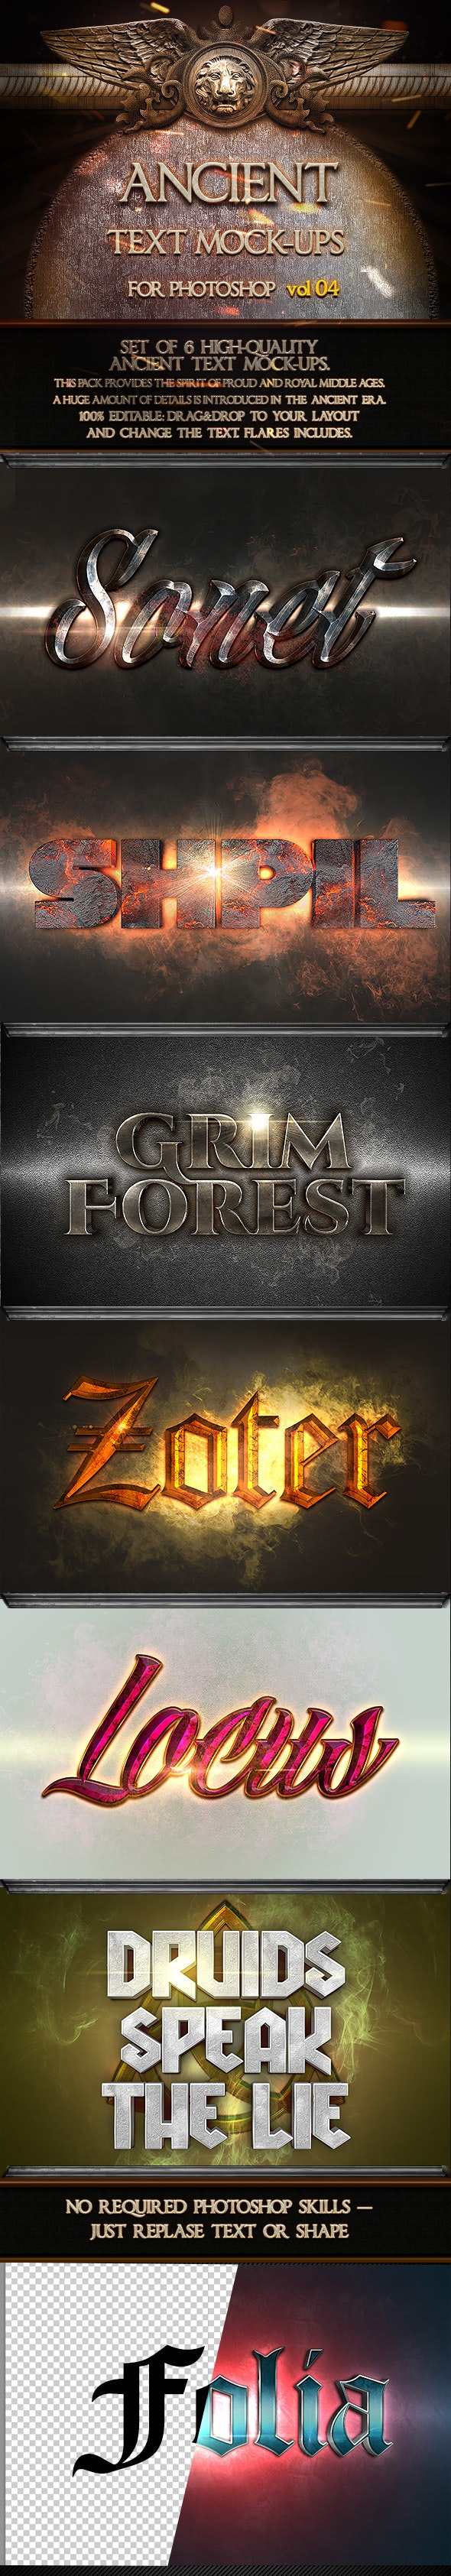 6 Ancient Text Mock-Ups  vol. 04 - Text Effects Styles